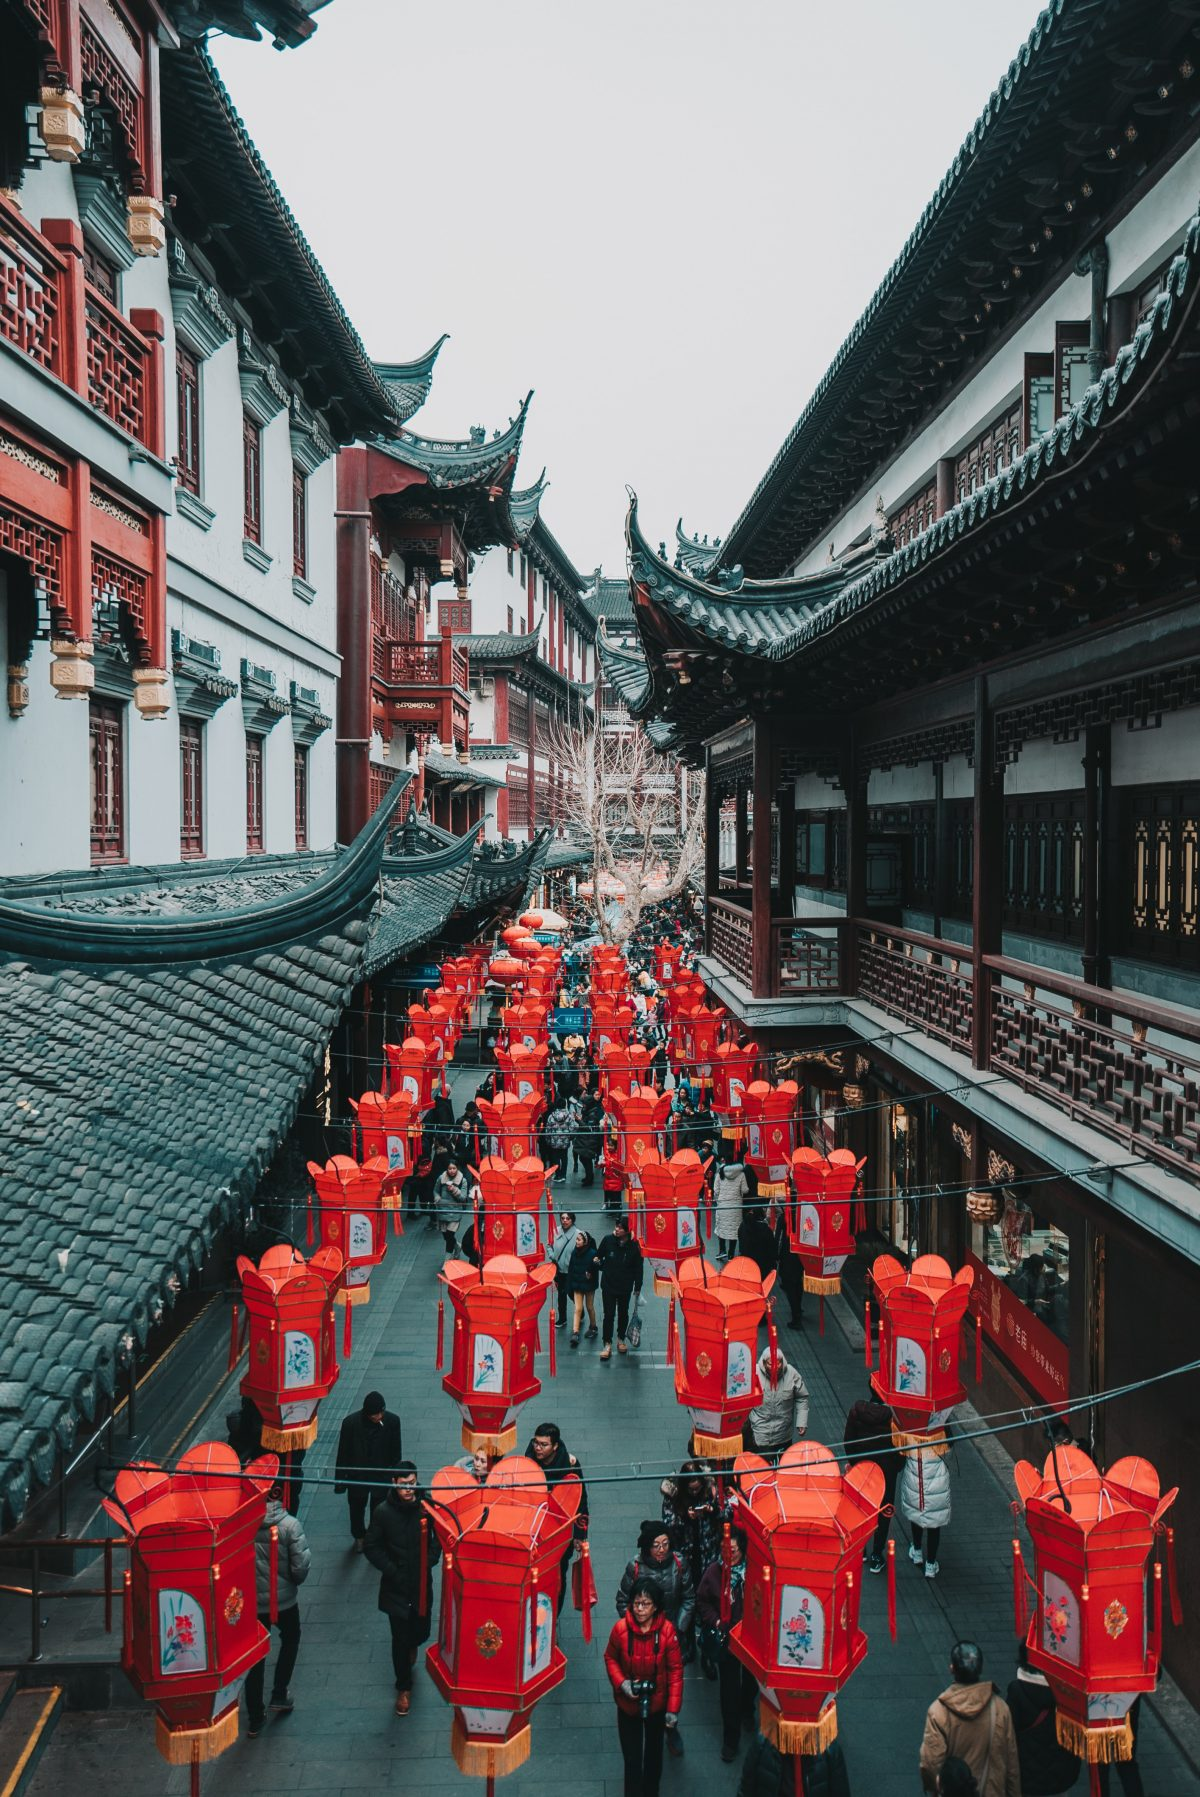 Bright red lanterns that adorn the streets of Yu Garden as pedestrians walk by admiring the classic oriental architecture